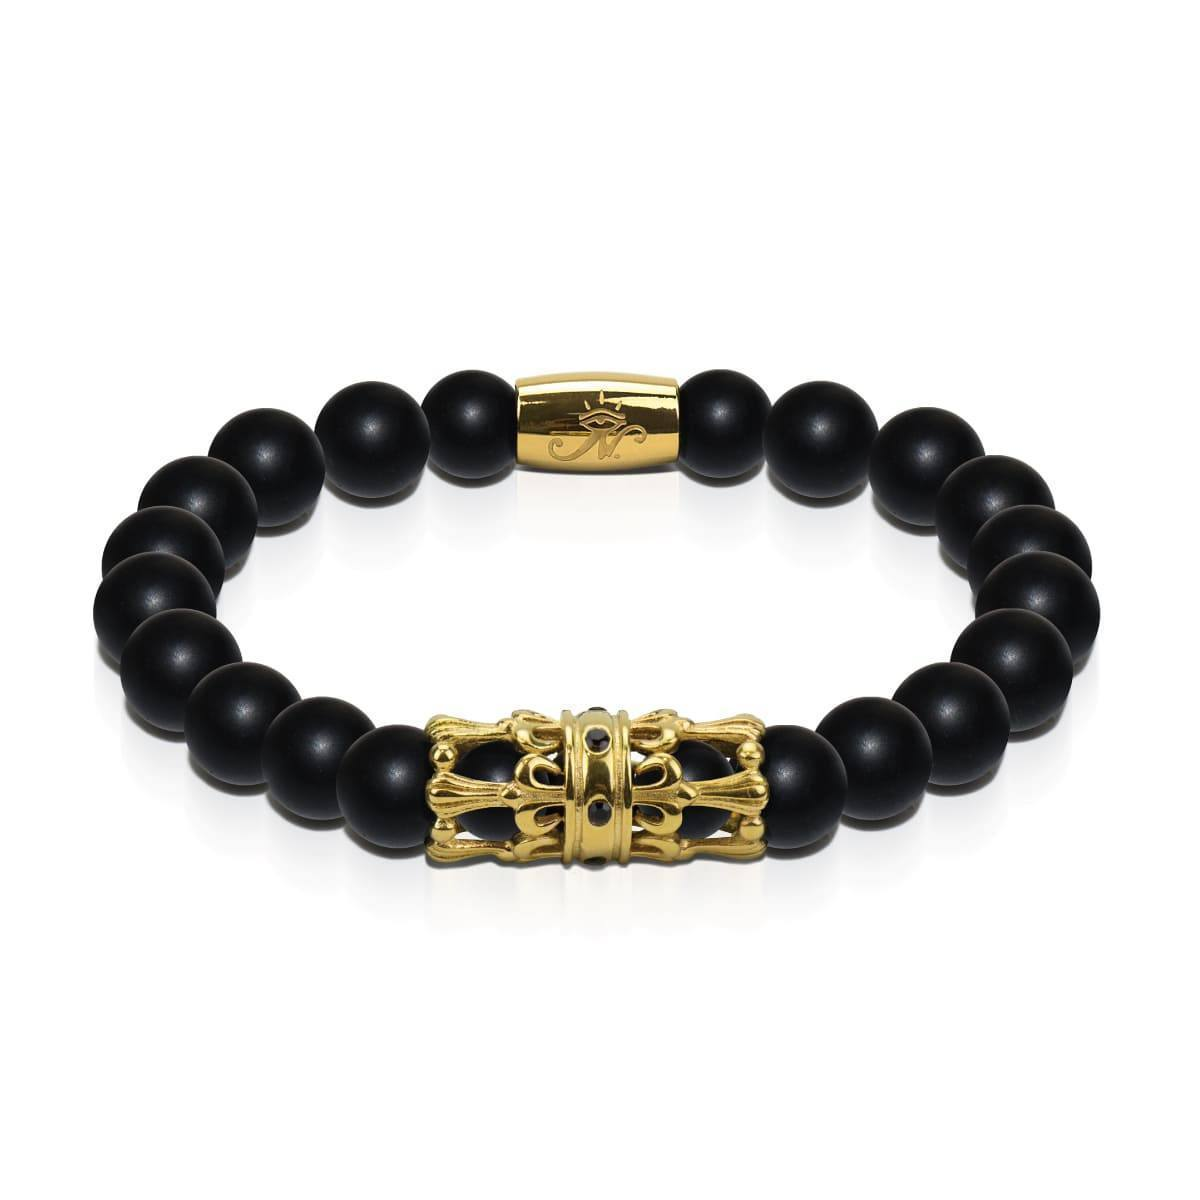 18k Gold Crown | Matte Black Agate | Men's Kingdom Bead Bracelet | Engravable